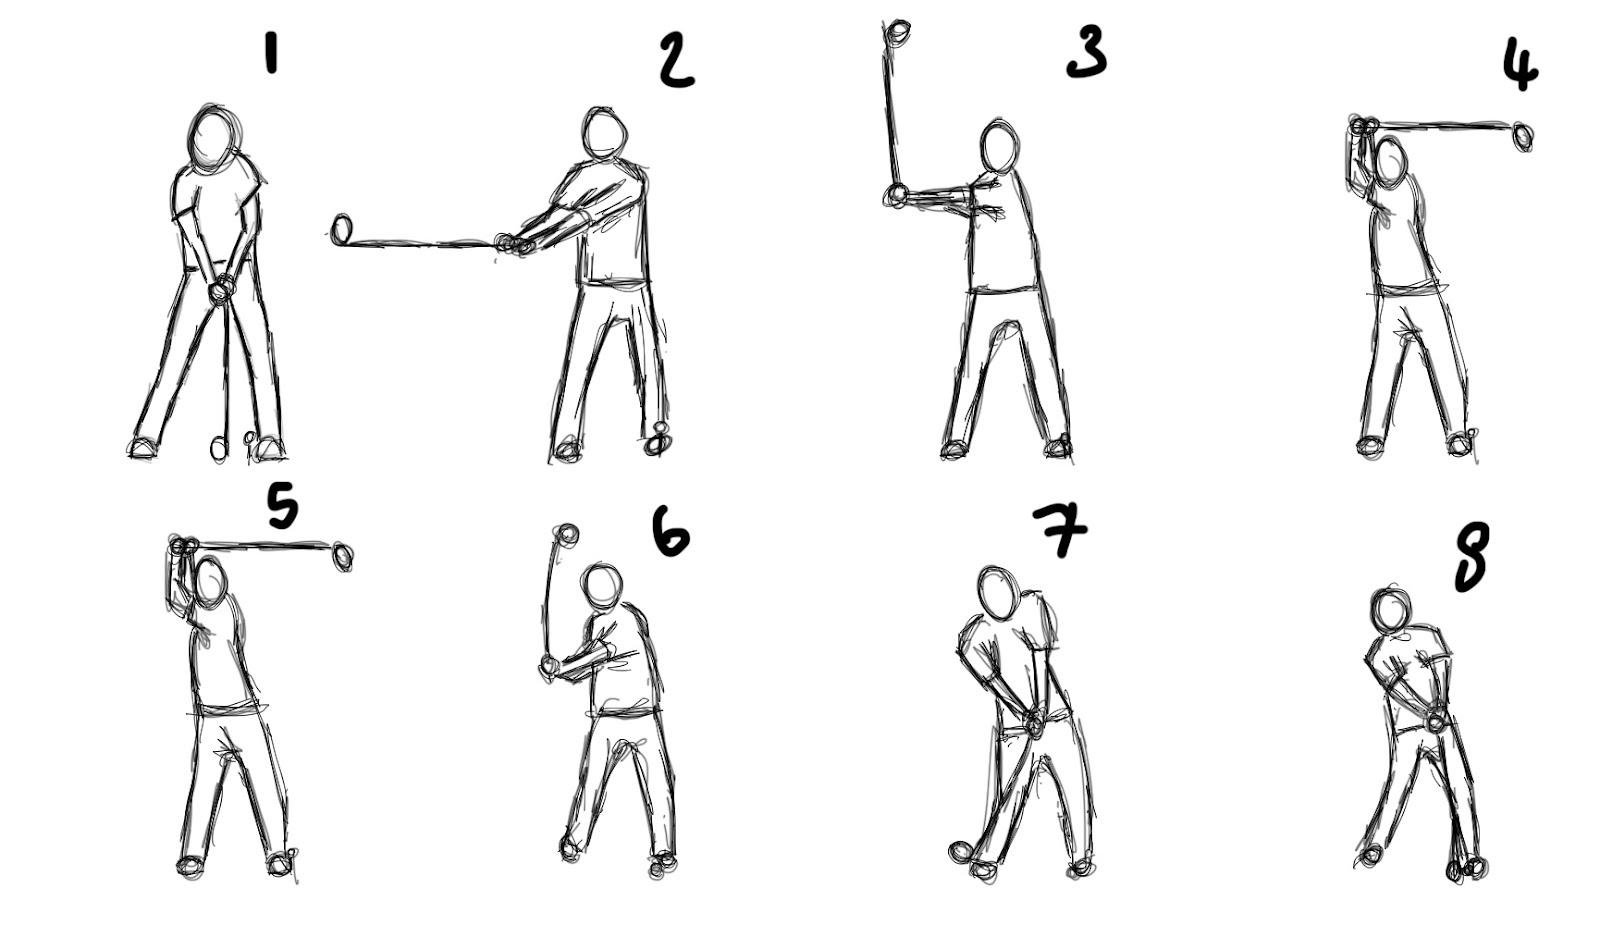 Joecooper Introduction To Animation Golf Swing Research